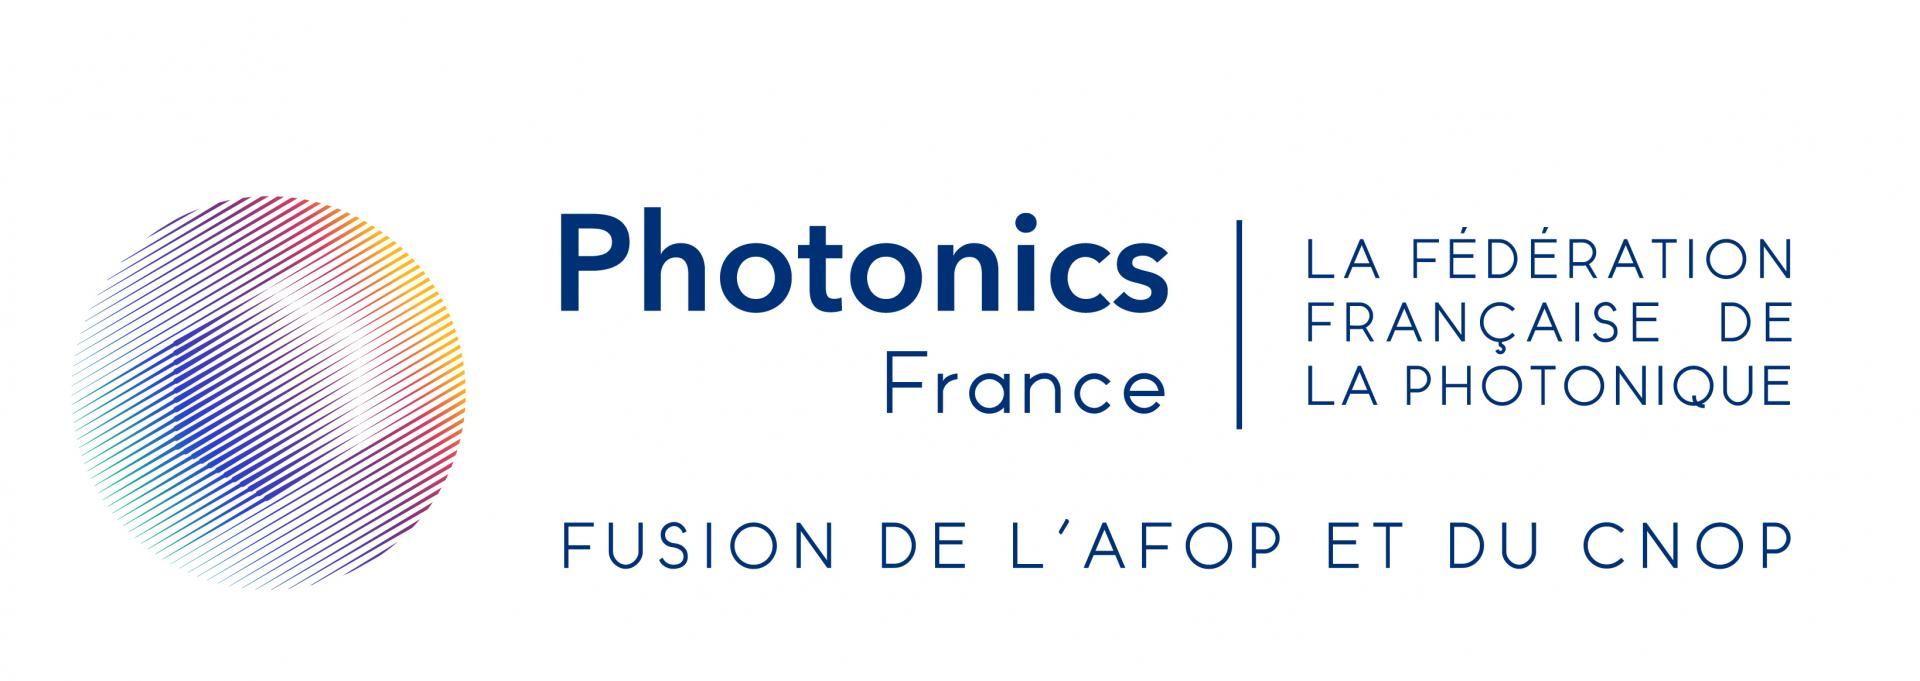 2018 05 03 logo photonics france horizontal 01